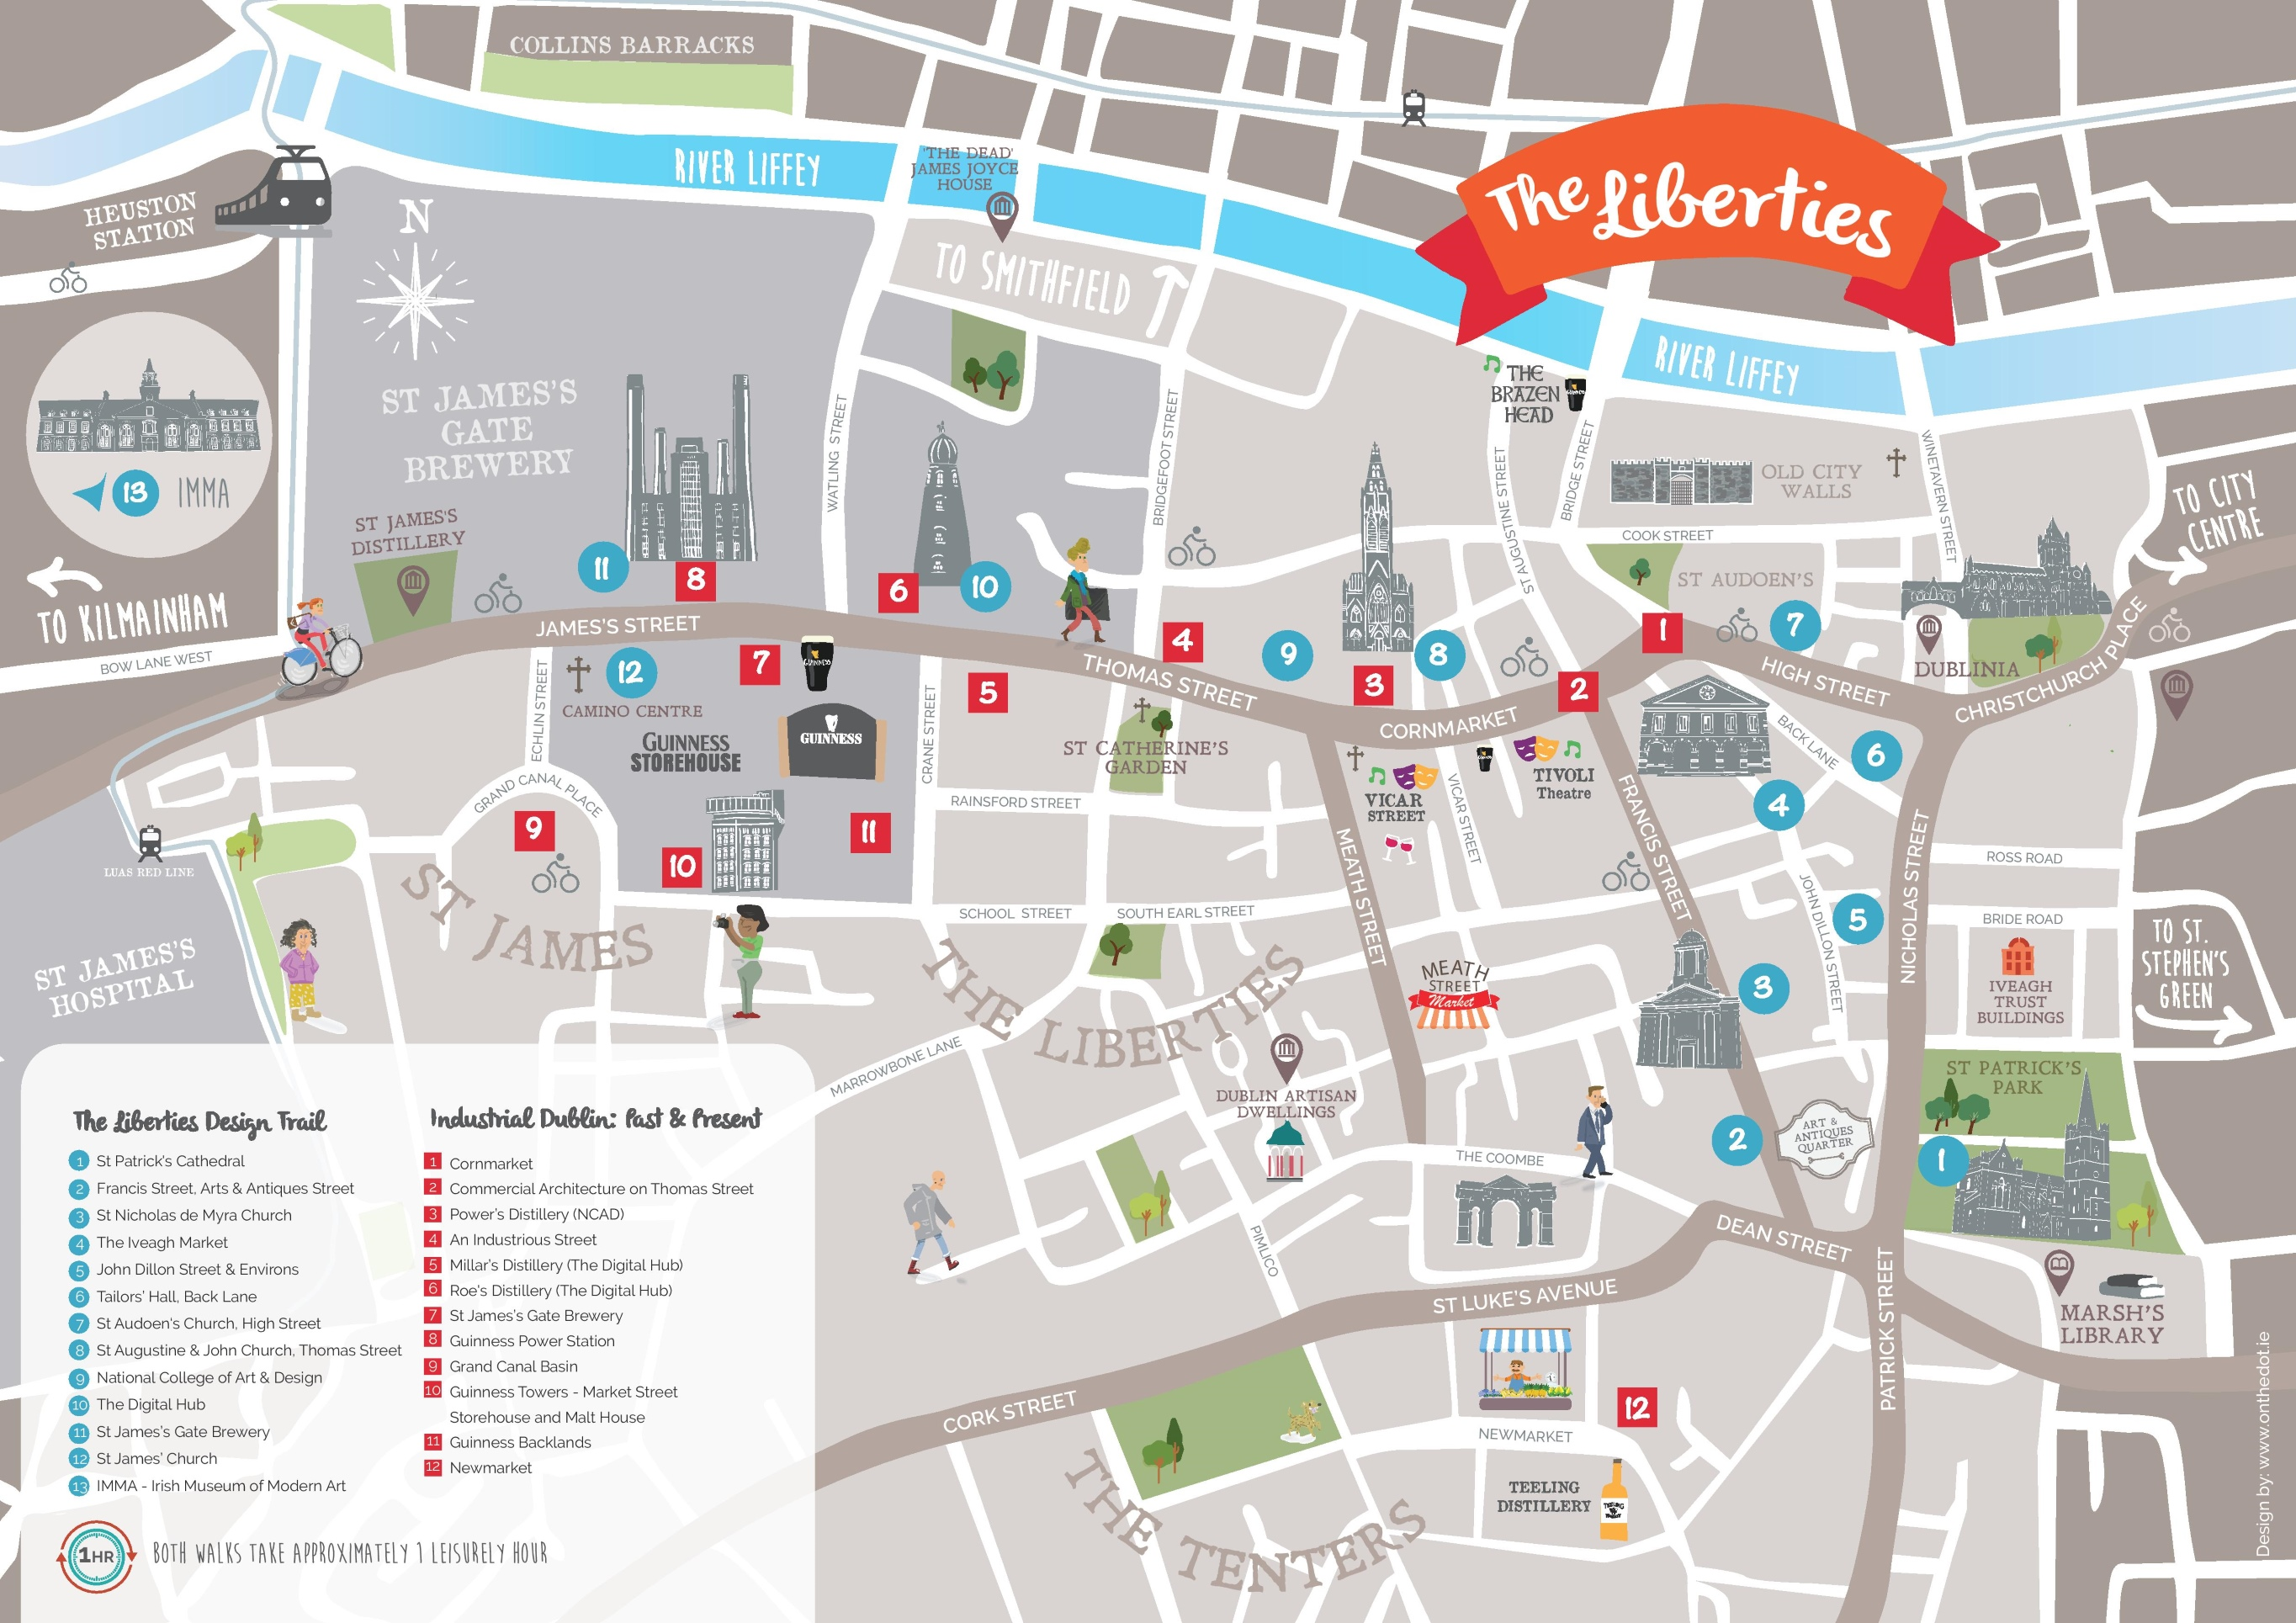 City Map Of Dublin Ireland.Dublin Libierties Tourist Attractions Map